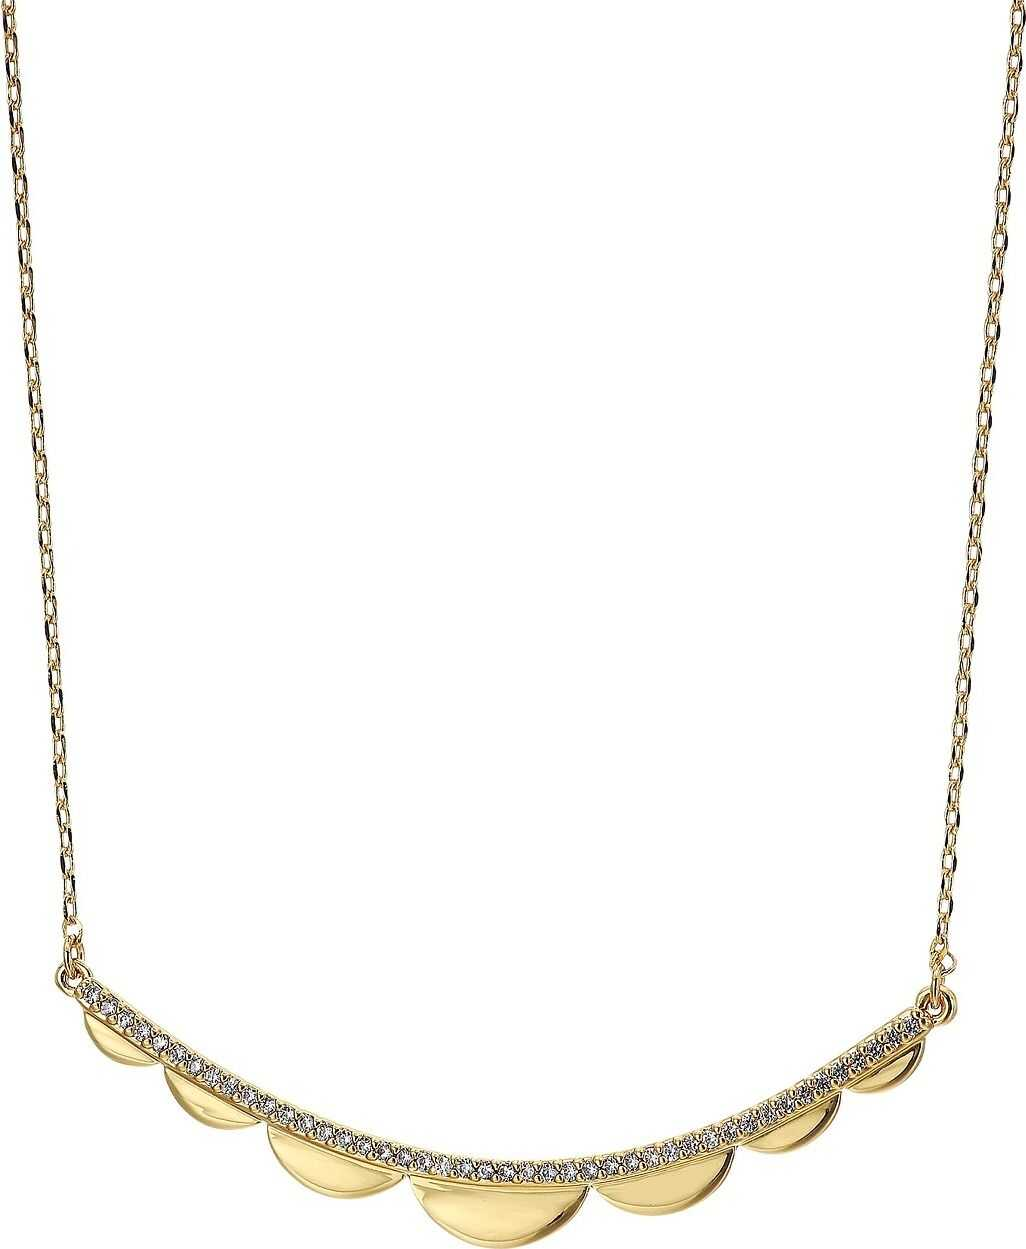 Kate Spade New York Slender Scallops Delicate Necklace Clear/Gold